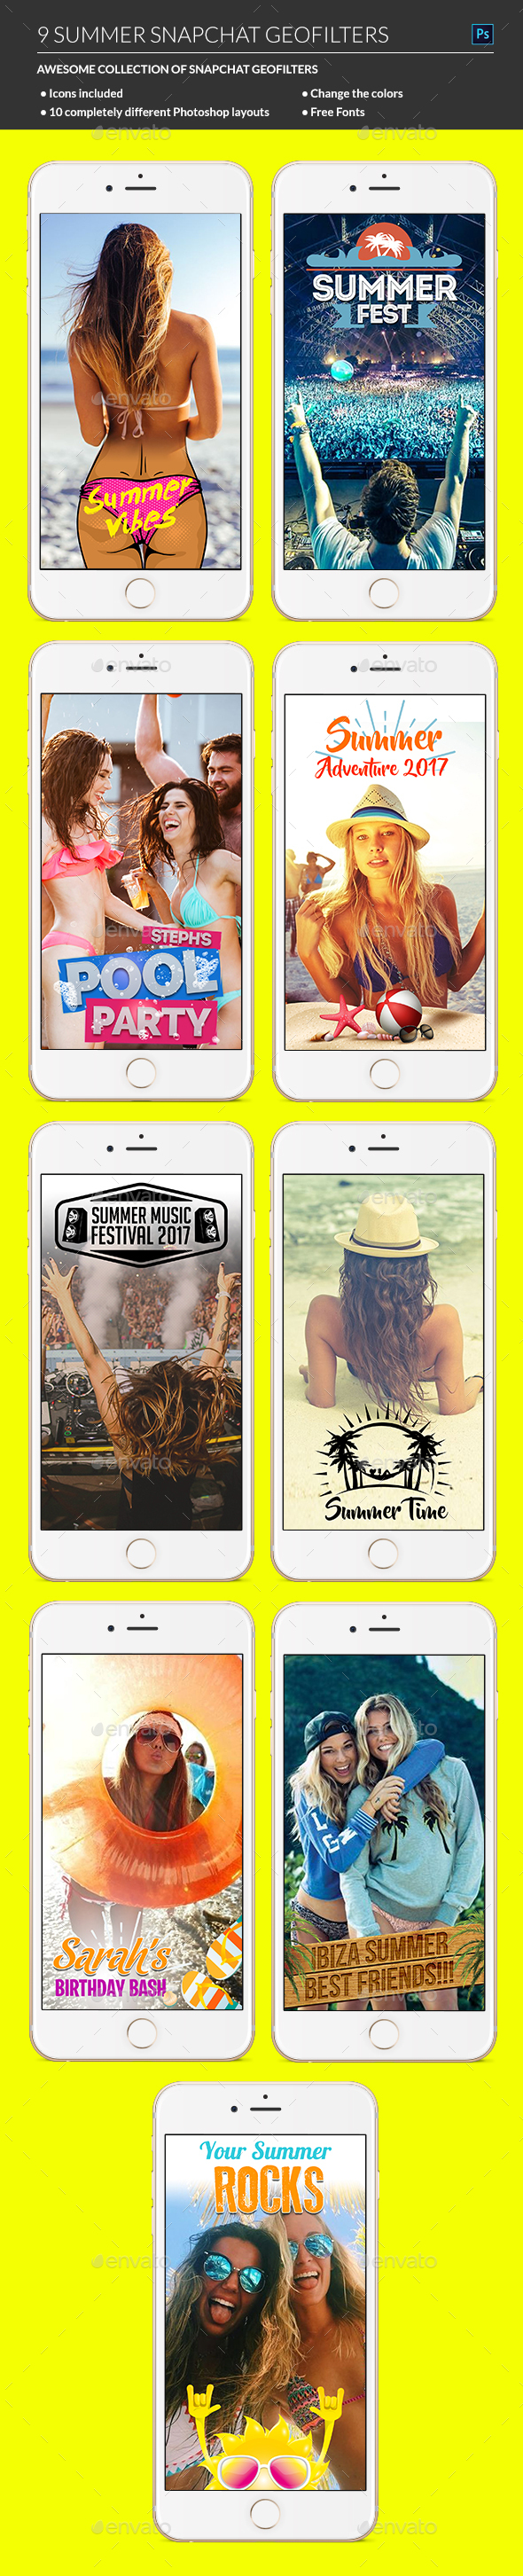 Summer Snapchat Geofilters - Miscellaneous Social Media